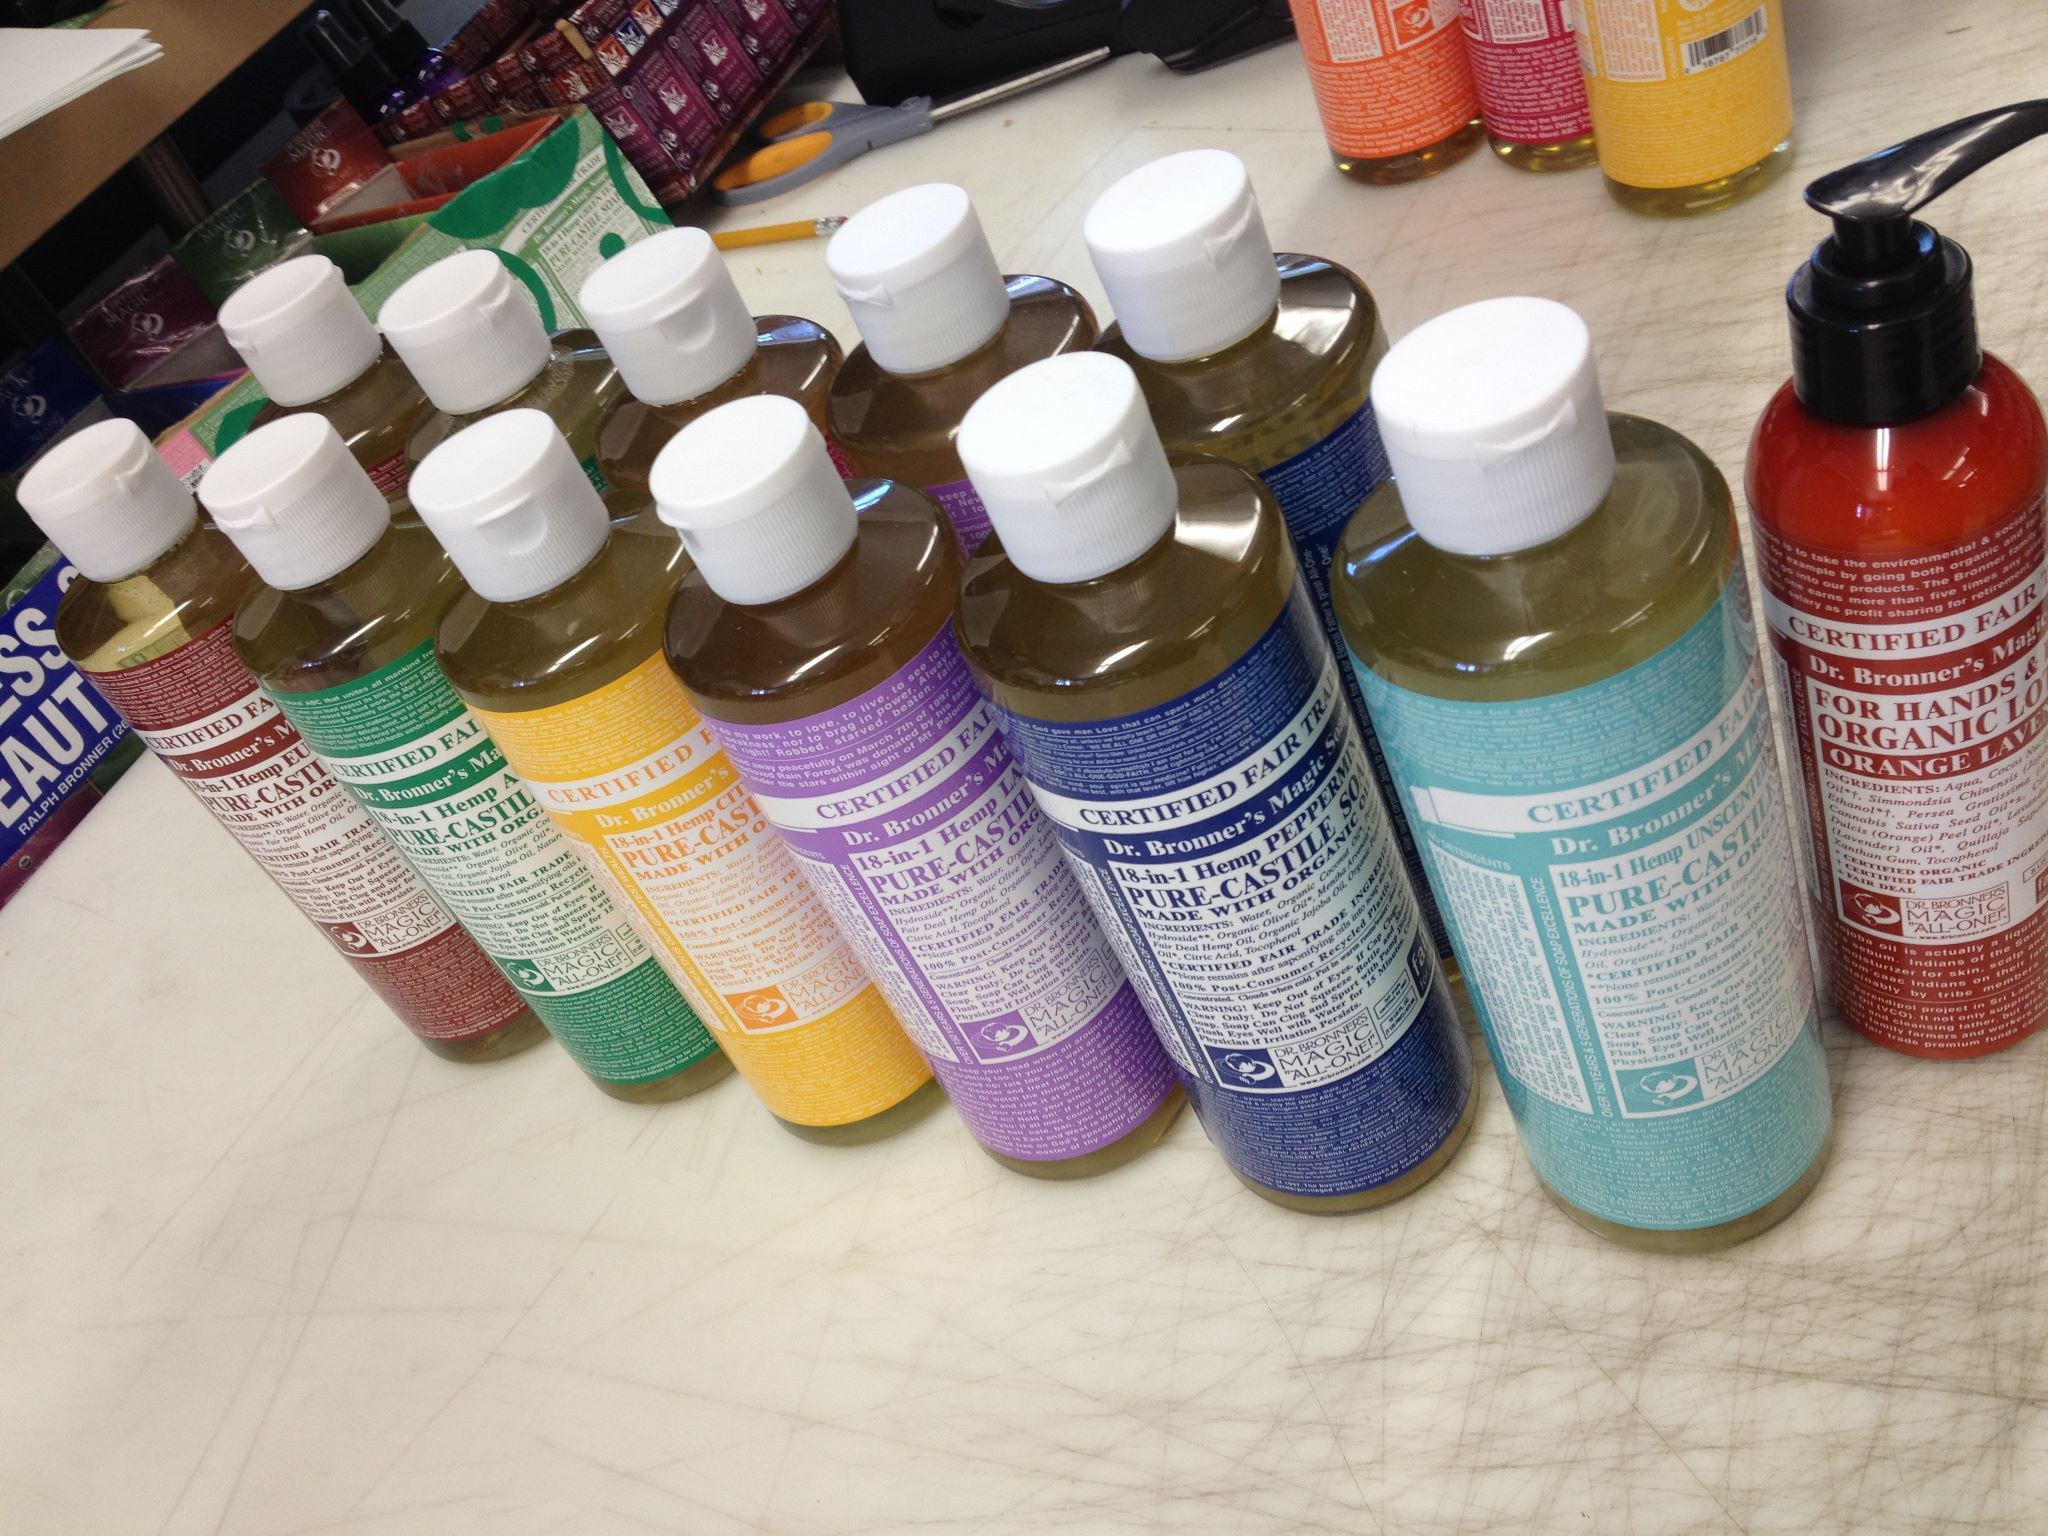 Dr. Bronner's Magic Soaps - Sampler Pack Offer